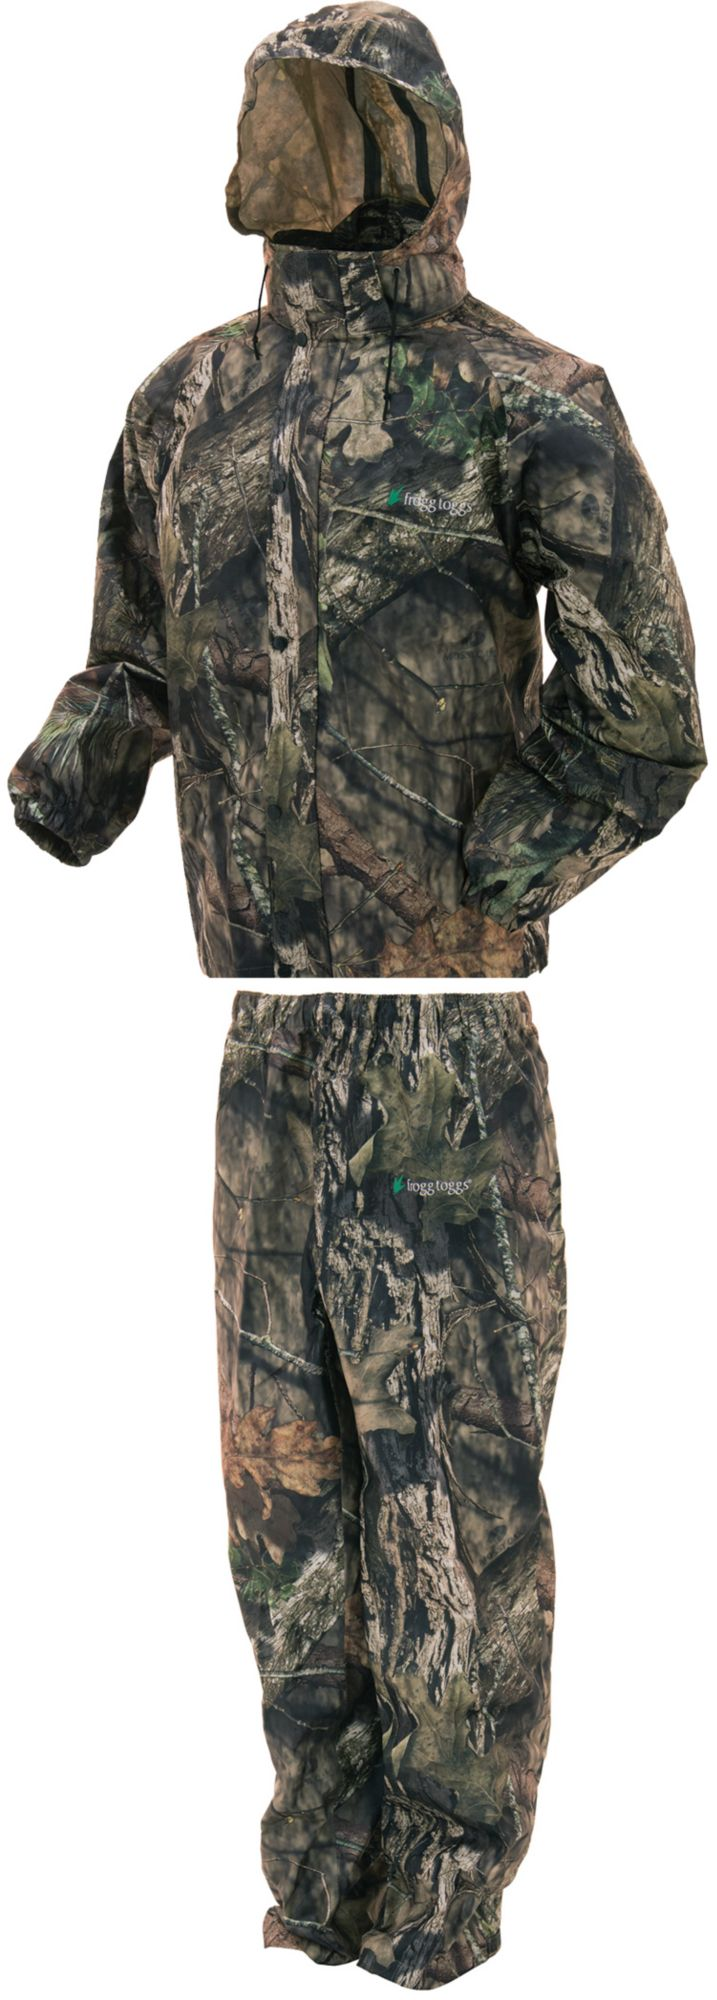 frogg toggs Men's All Sport Camo Rain Suit, Size: Small, Brown thumbnail